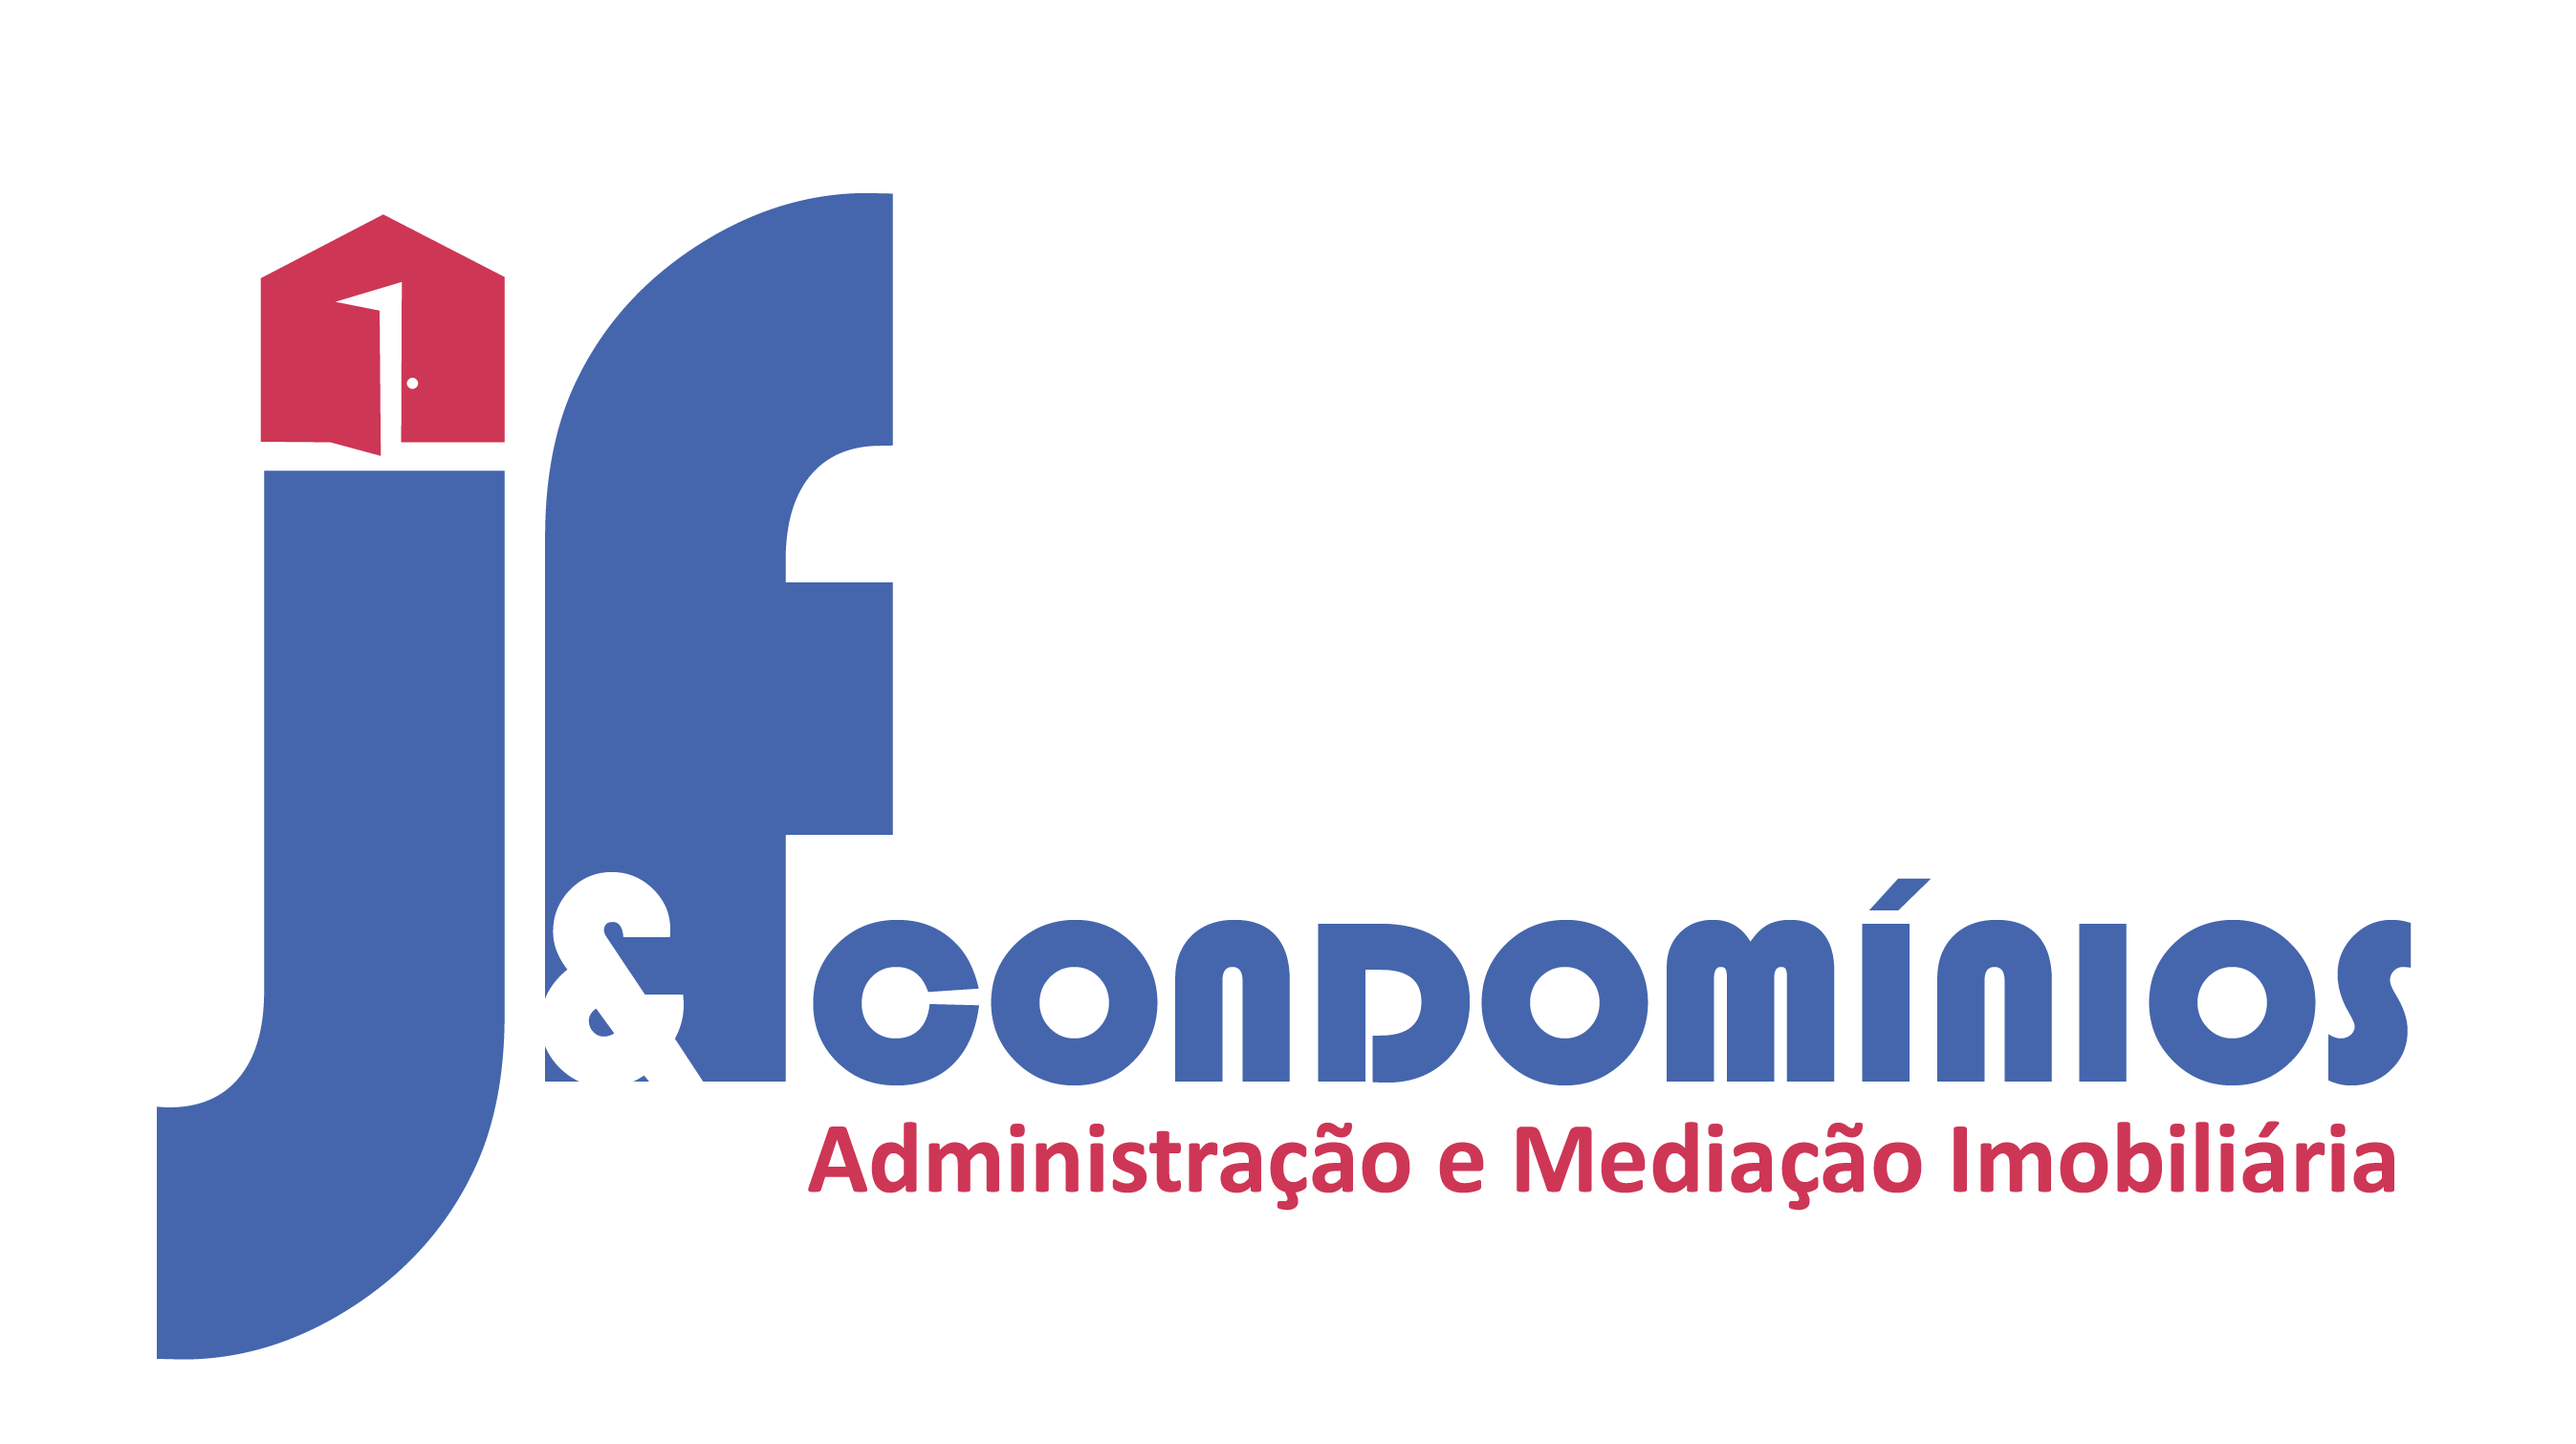 J&F.CONDOMINIOS, Lda - Condominium Management and Administration Companies